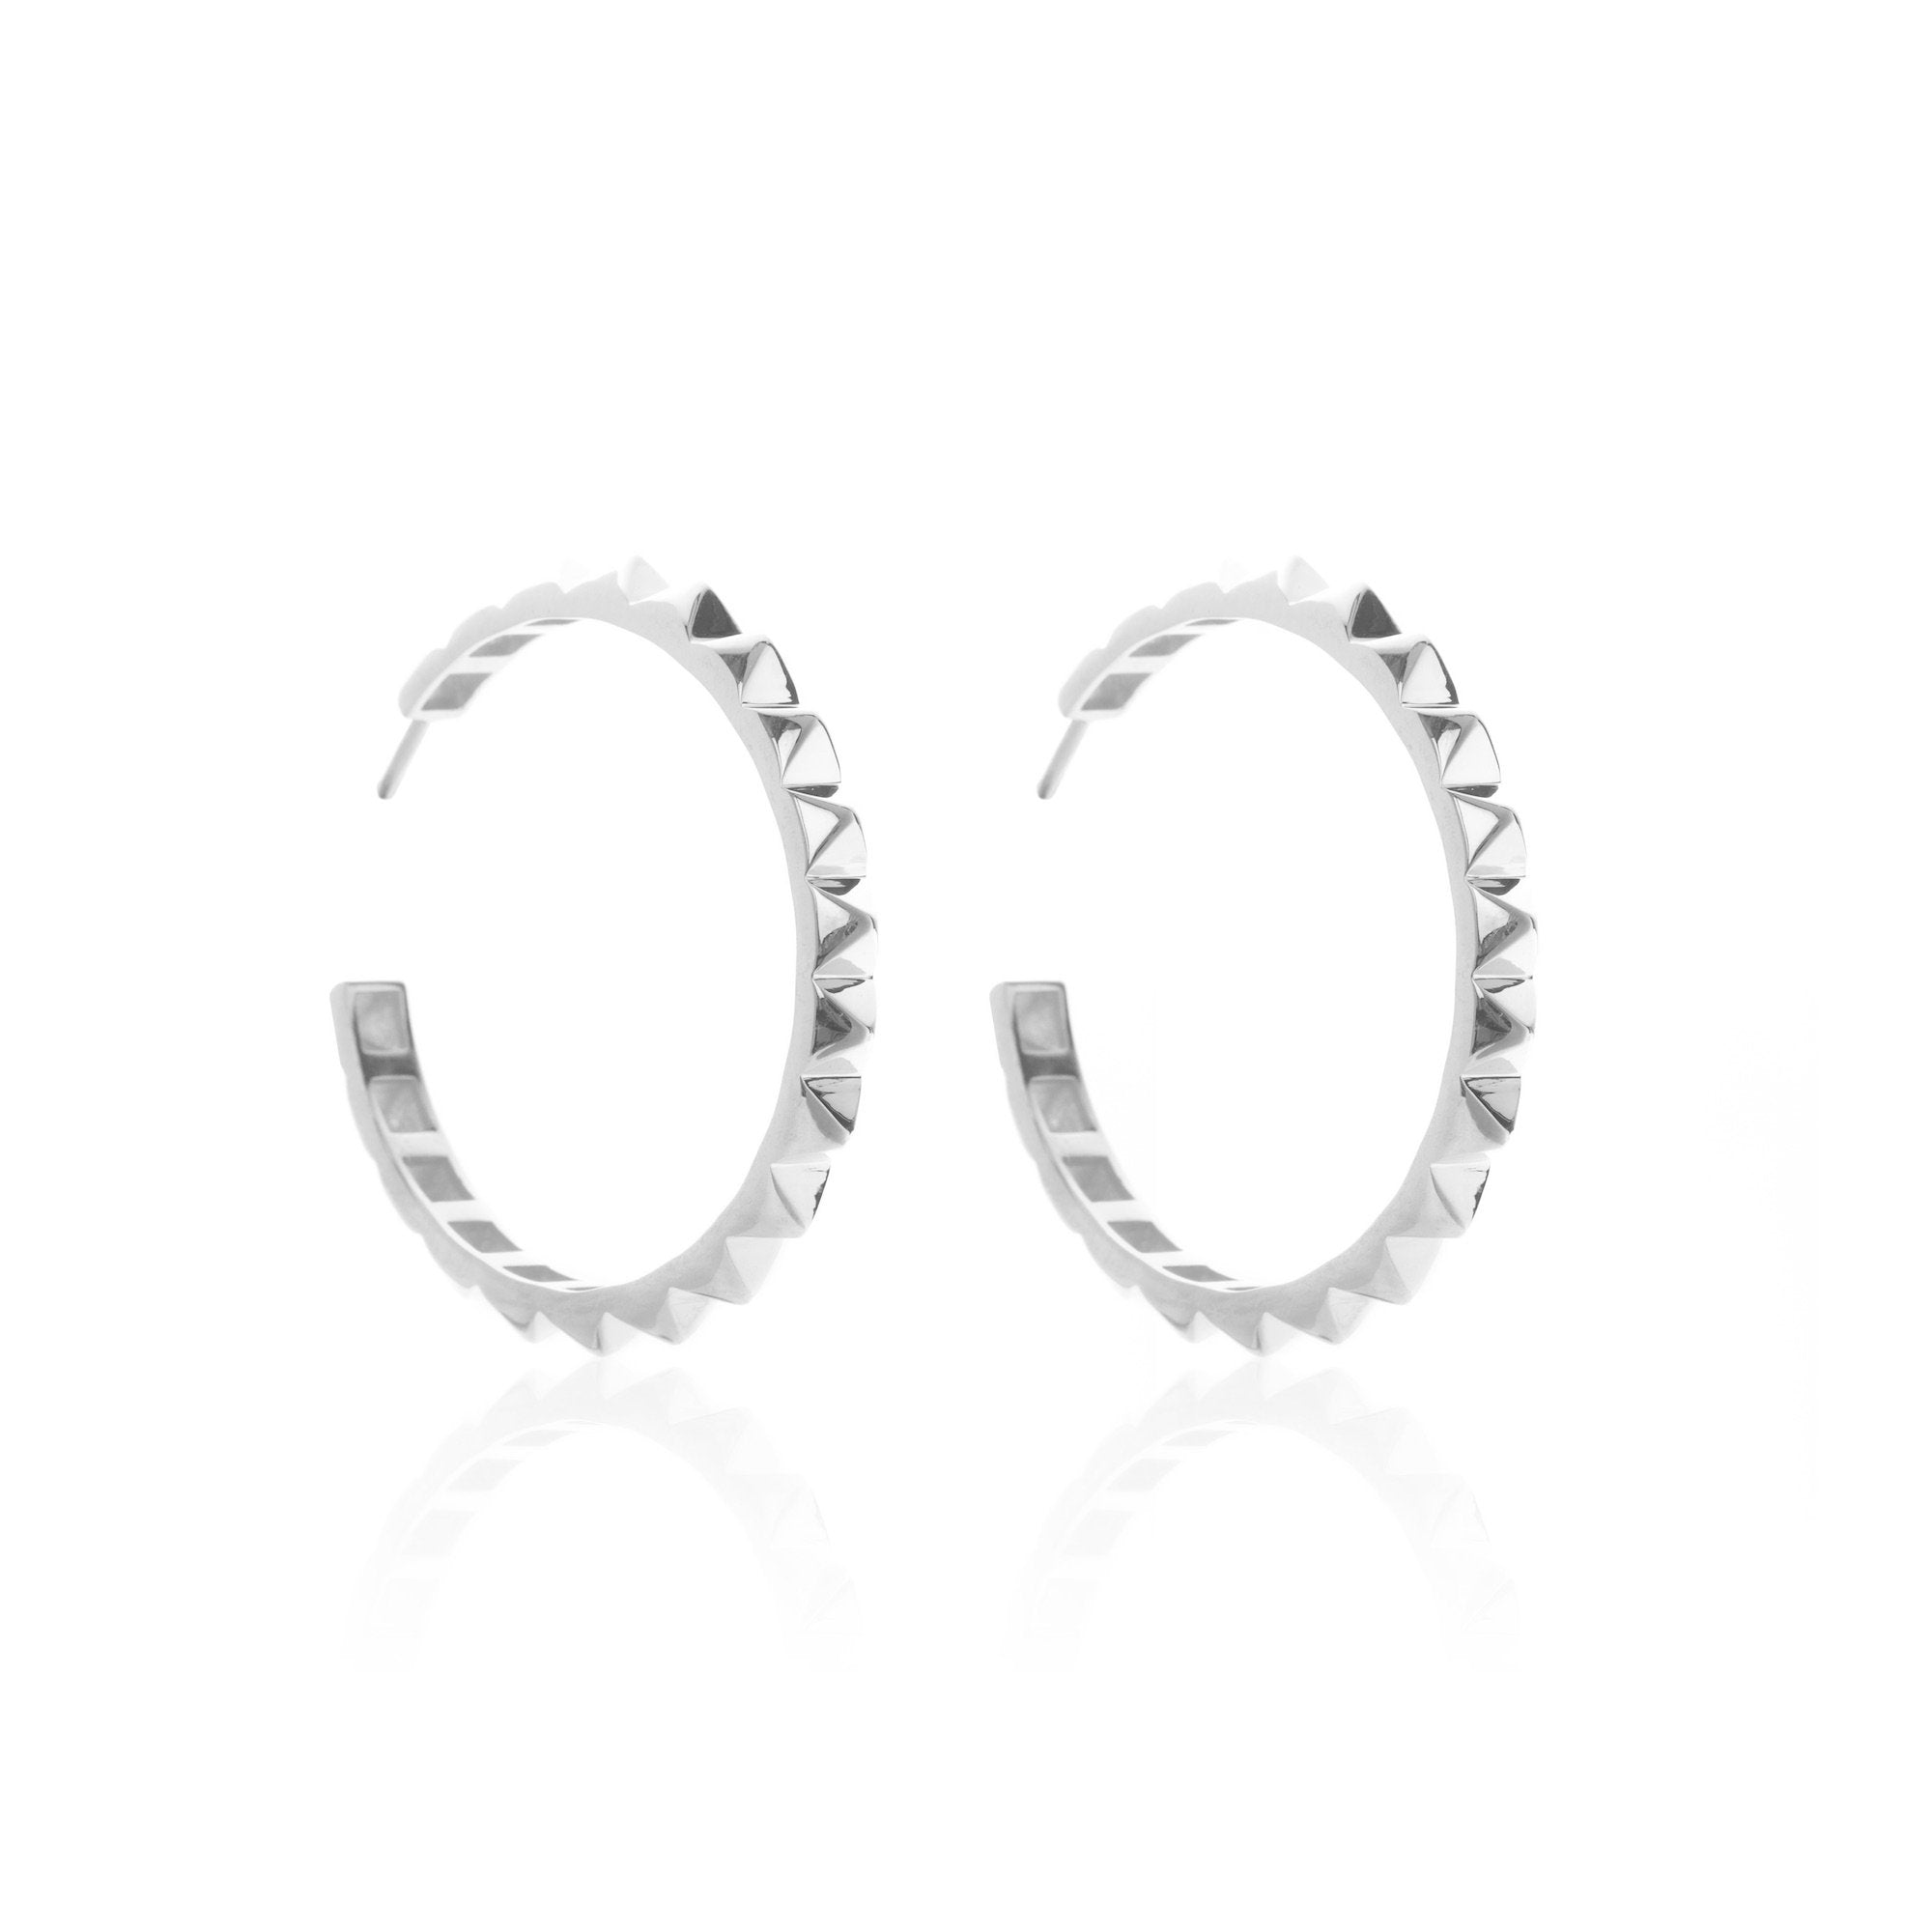 Silk & Steel Jewellery Perfect Party Hoop Earrings Sterling Silver